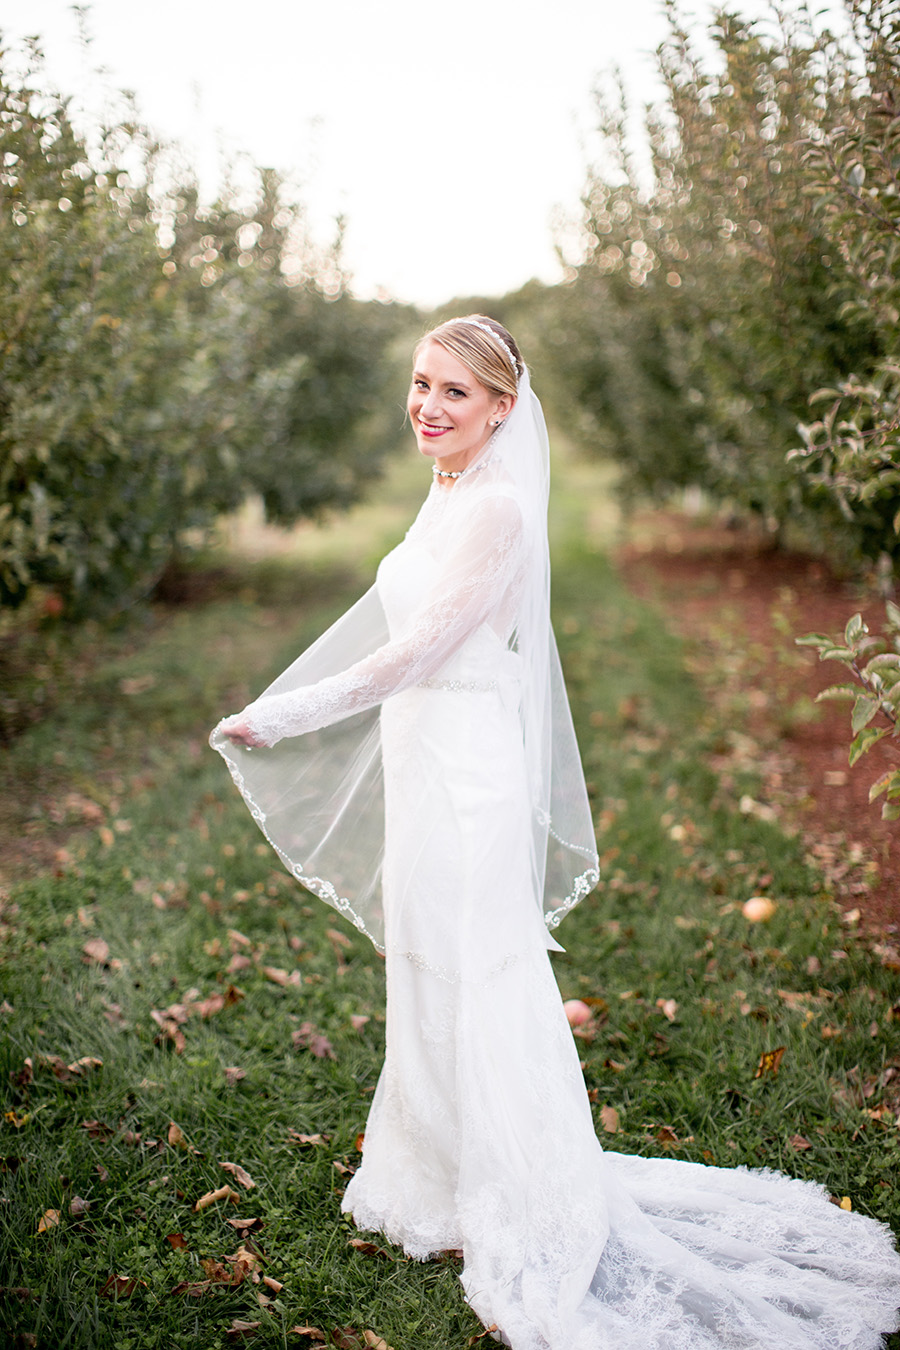 sunset wedding portraits in the apple orchard at Hill Creek Farms